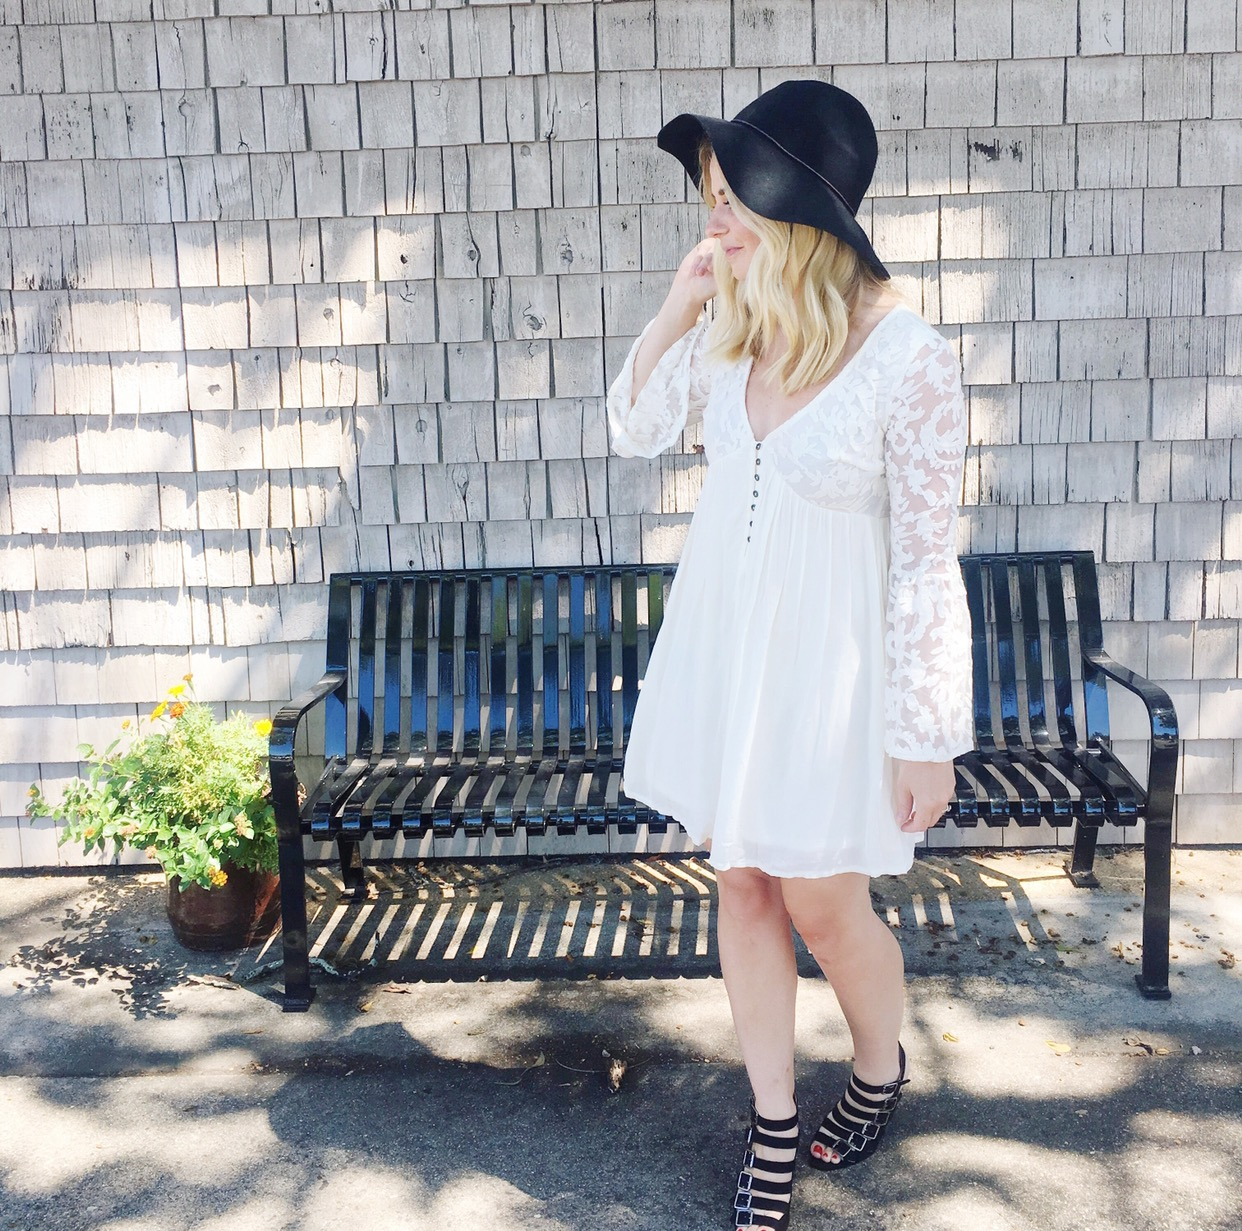 Style Steal: White Lace Dress